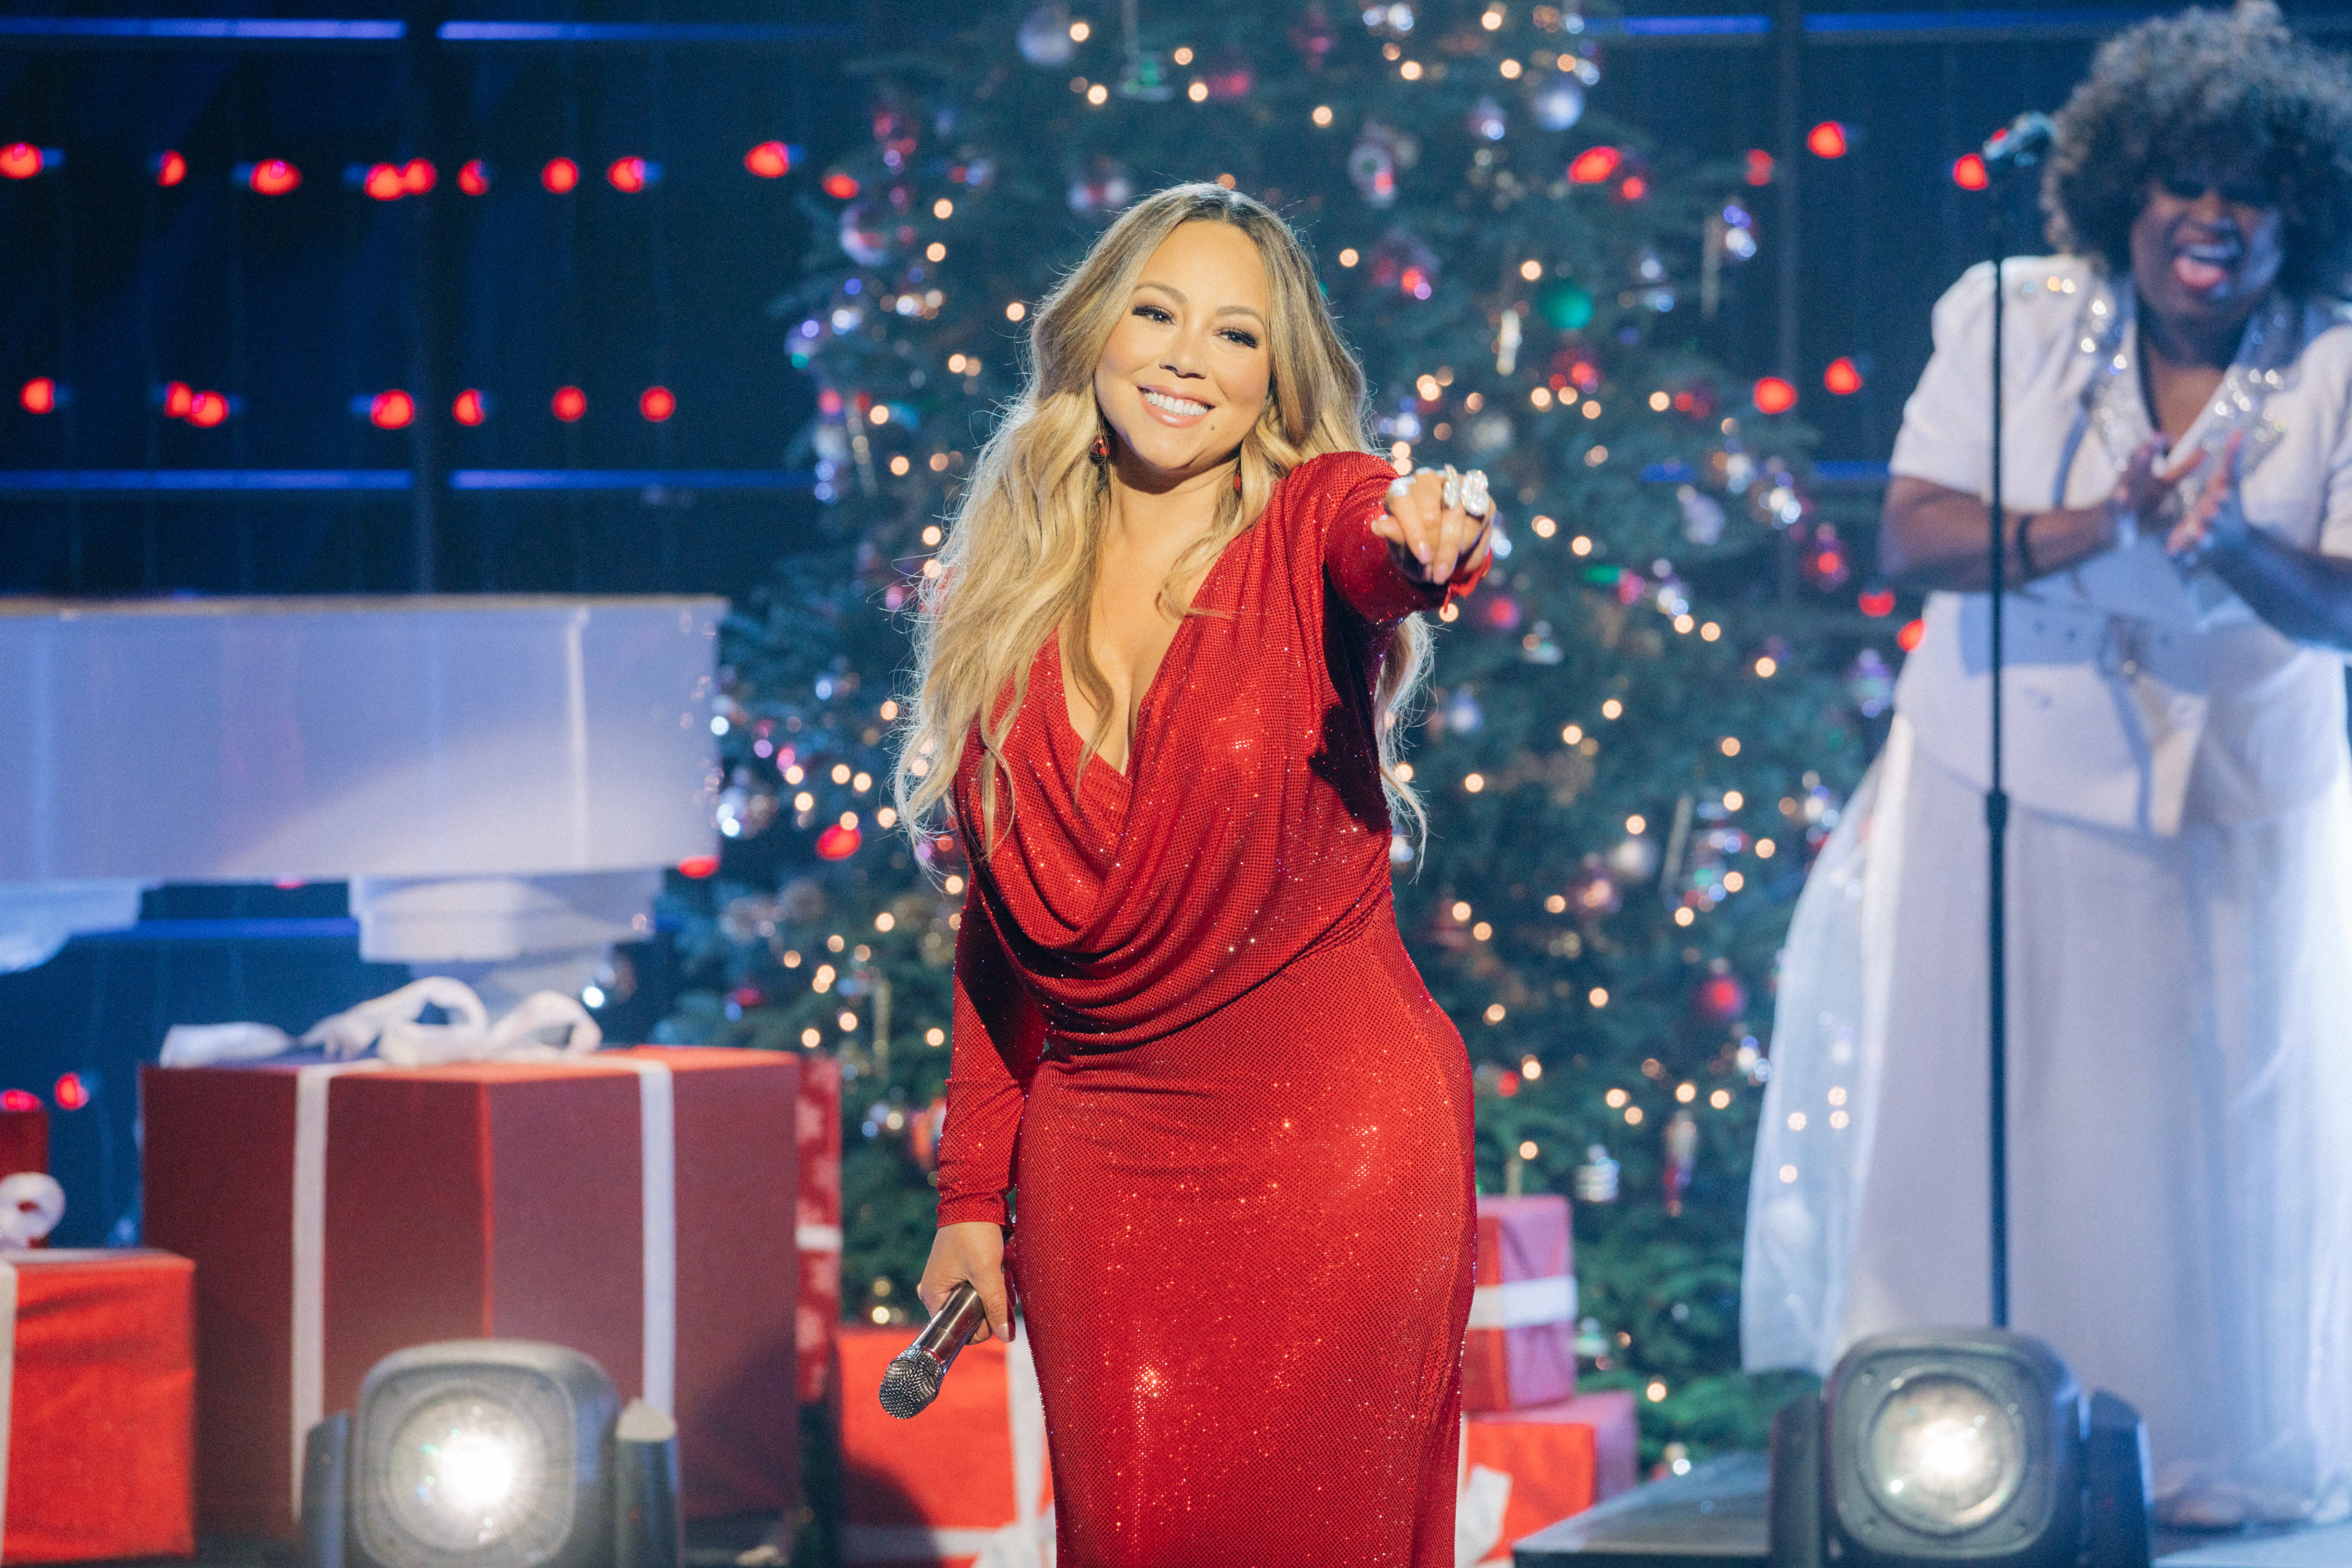 "Mariah Carey performs ""Oh Santa"" from her 25th Anniversary album reissue of Merry Christmas during The Late Late Show with James Corden, airing Tuesday, December 17, 2019. (Photo by Terence Patrick/CBS via Getty Images)"